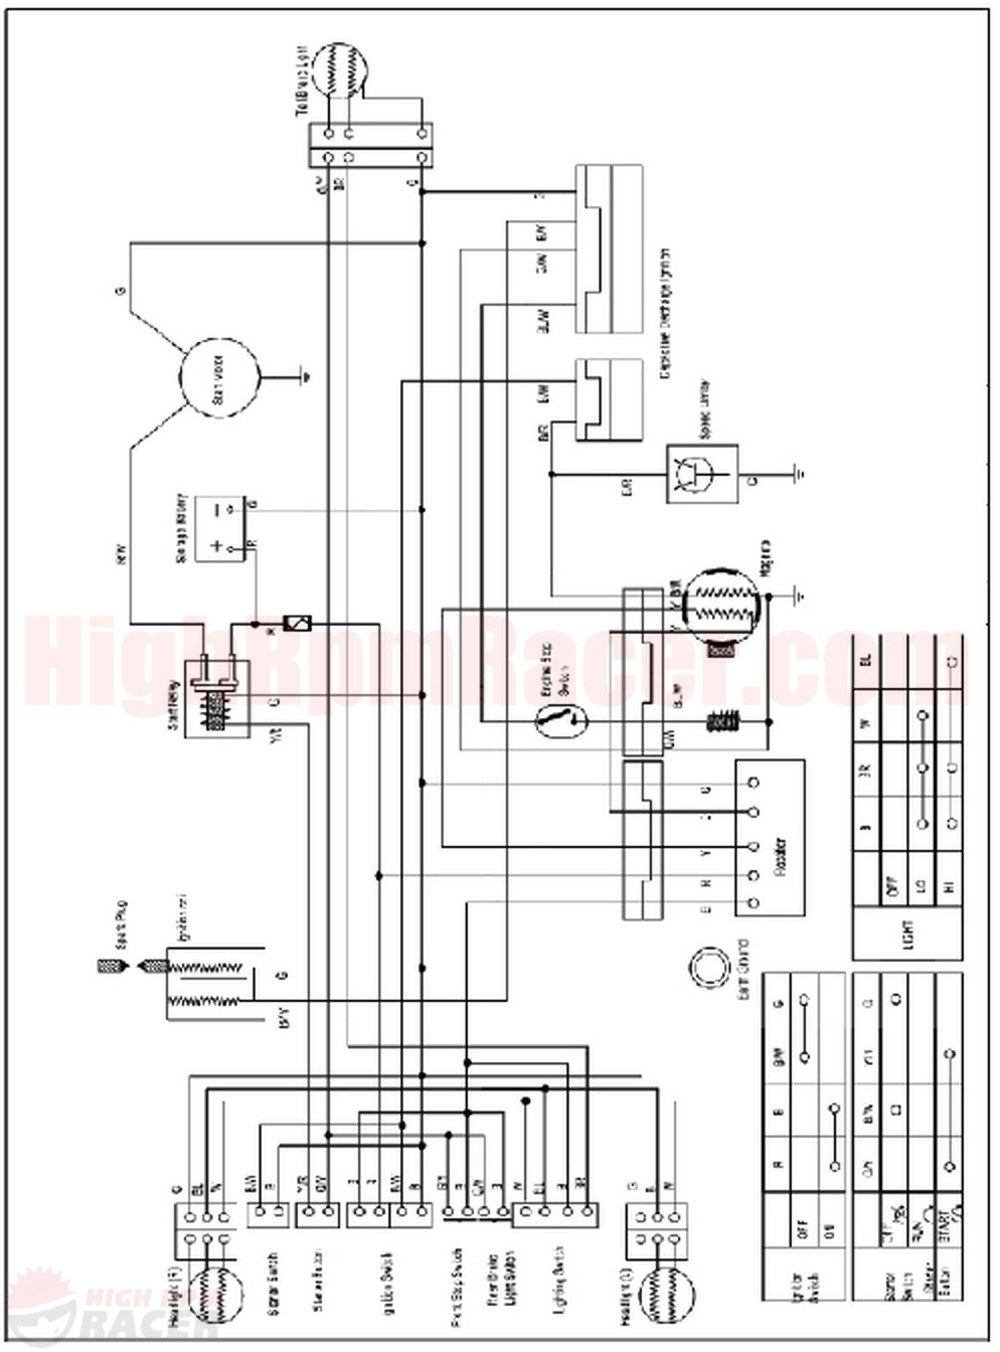 medium resolution of wiring diagram for baja 150cc atvs 000 wiring diagram today chinese 150cc atv wiring diagram 150cc atv wiring diagram